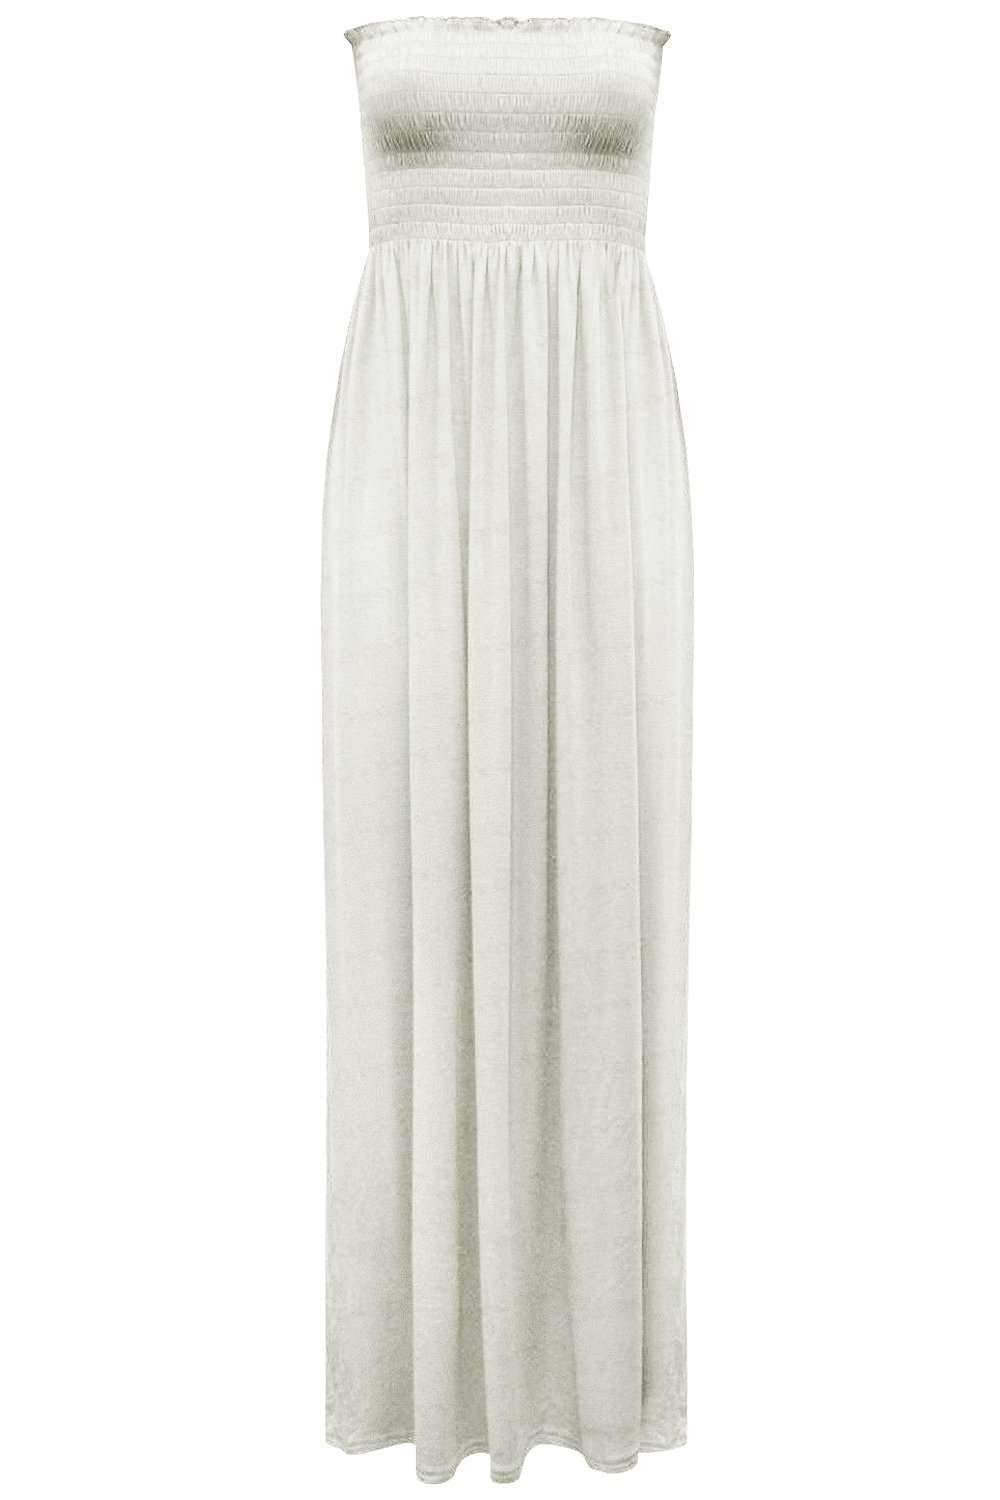 Khaki Strapless Sheering Bandeau Maxi Dress - bejealous-com